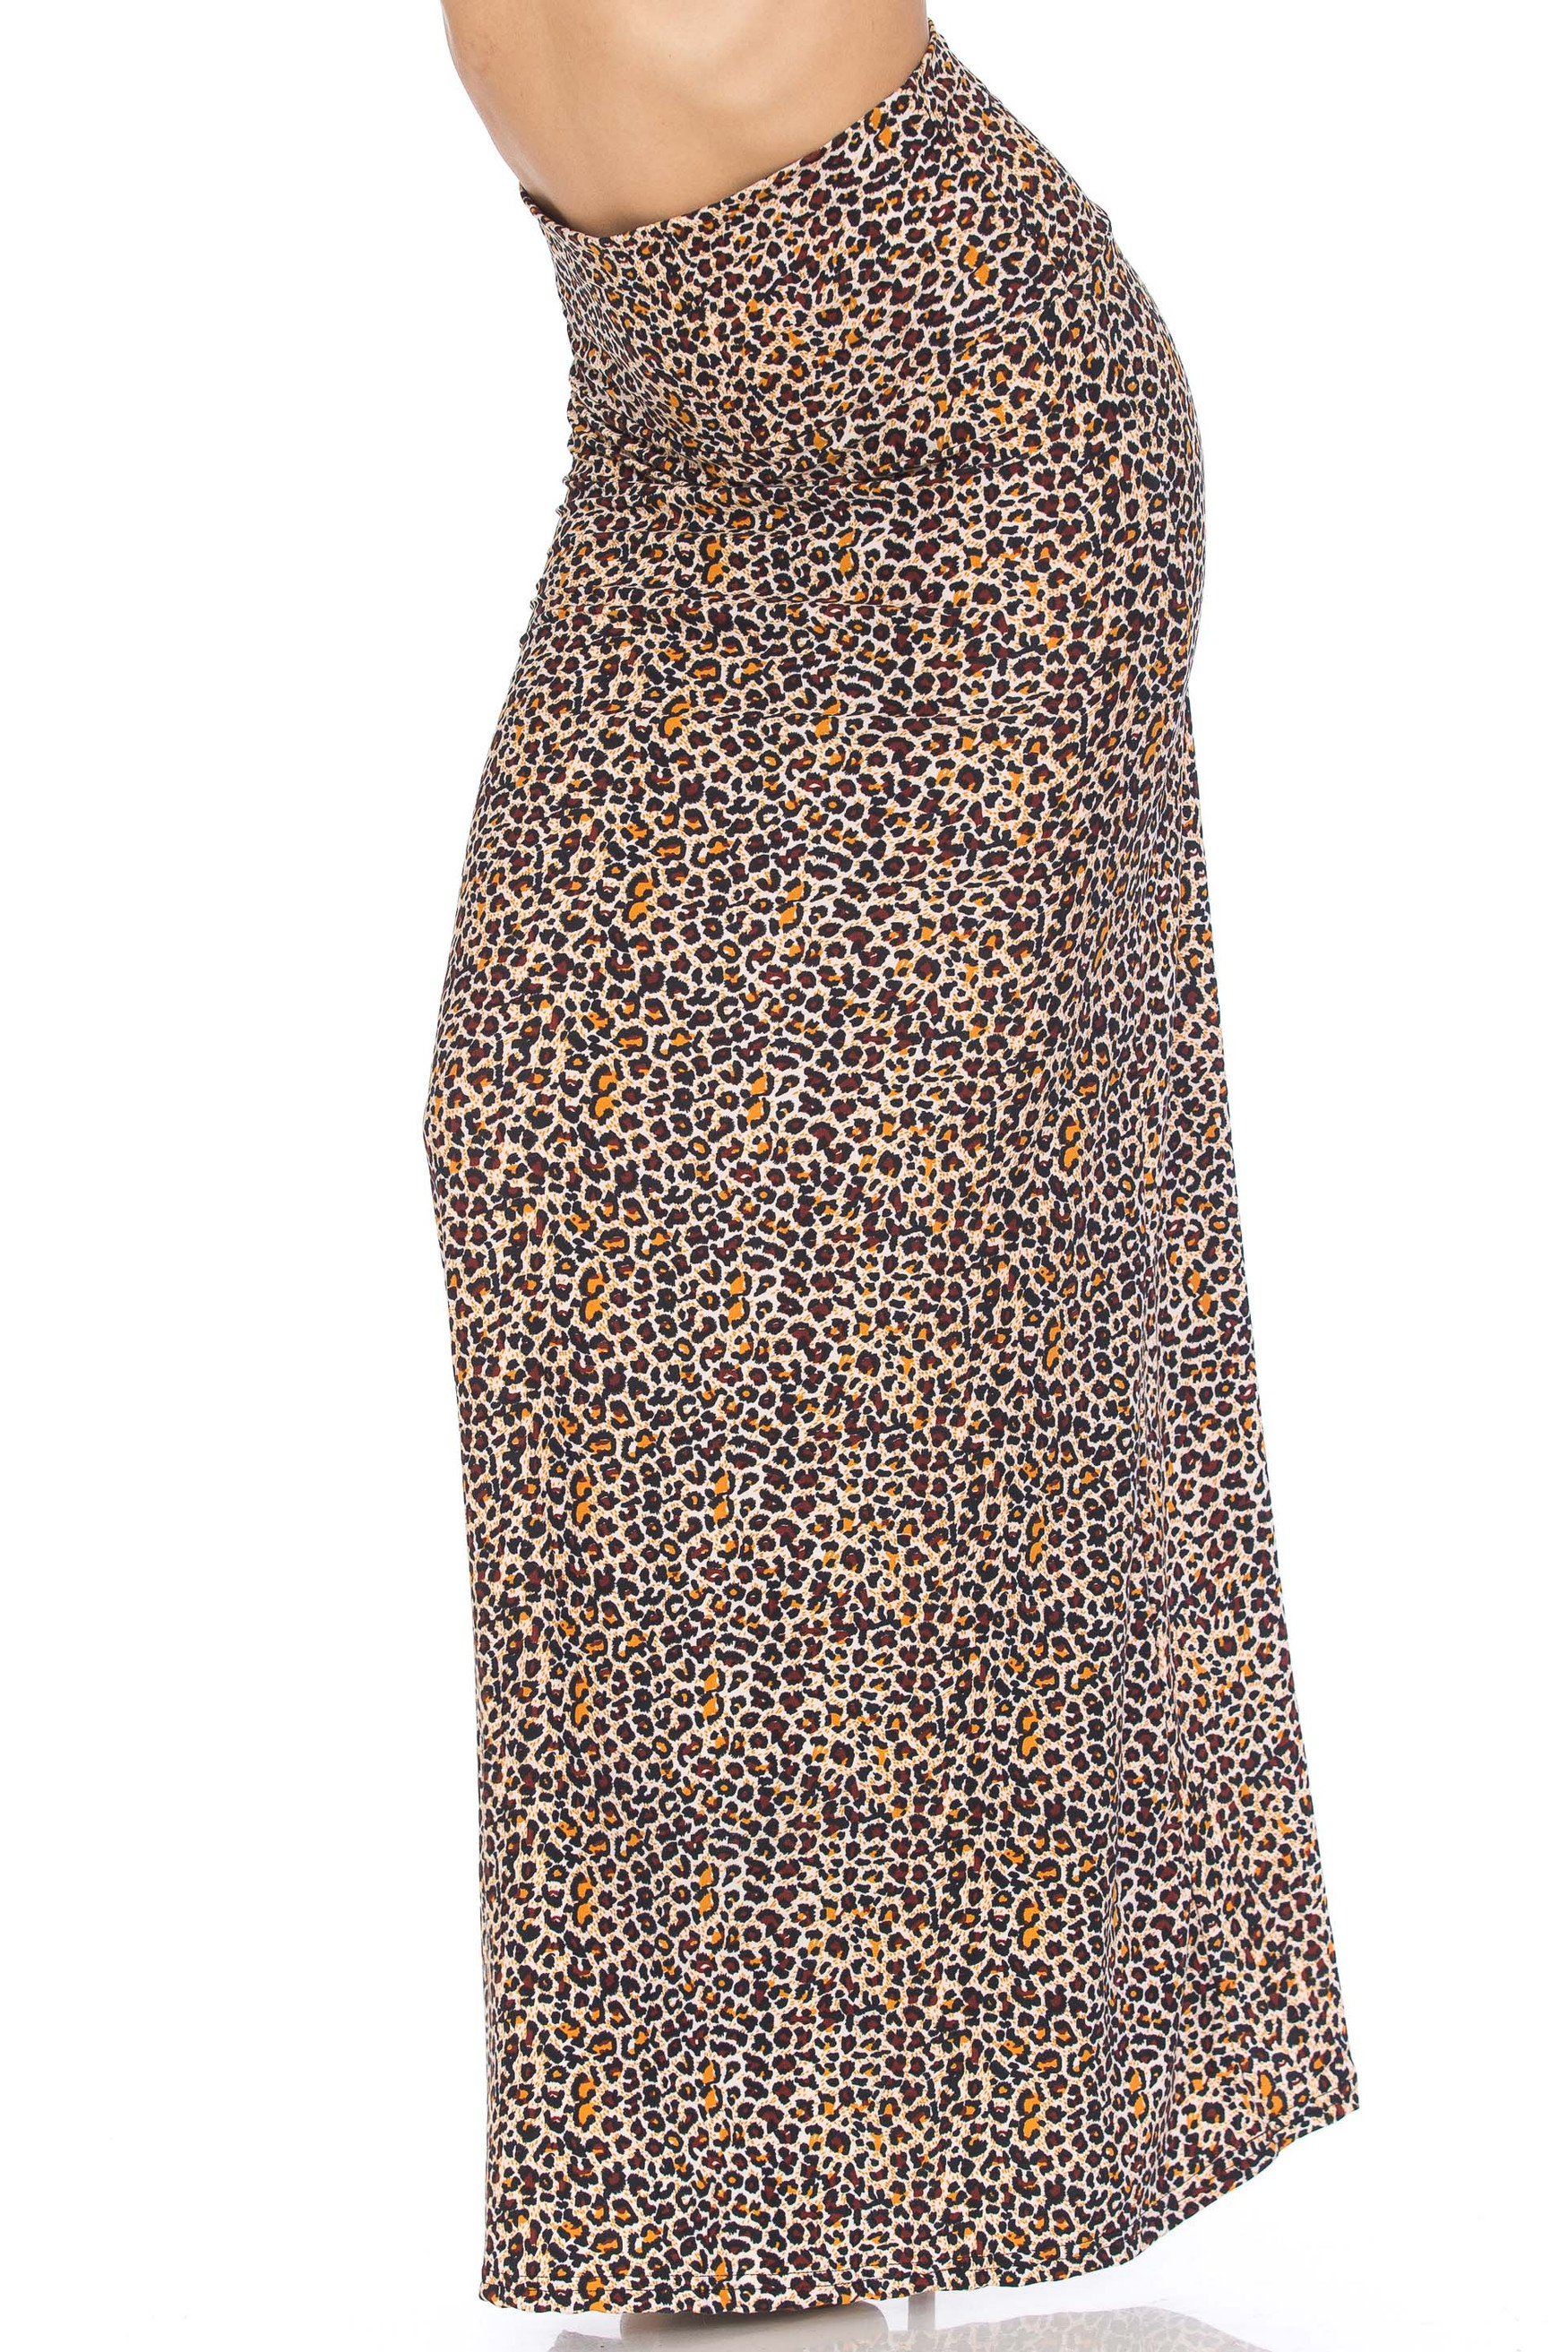 Savage Leopard Plus Size Buttery Soft Maxi Skirt